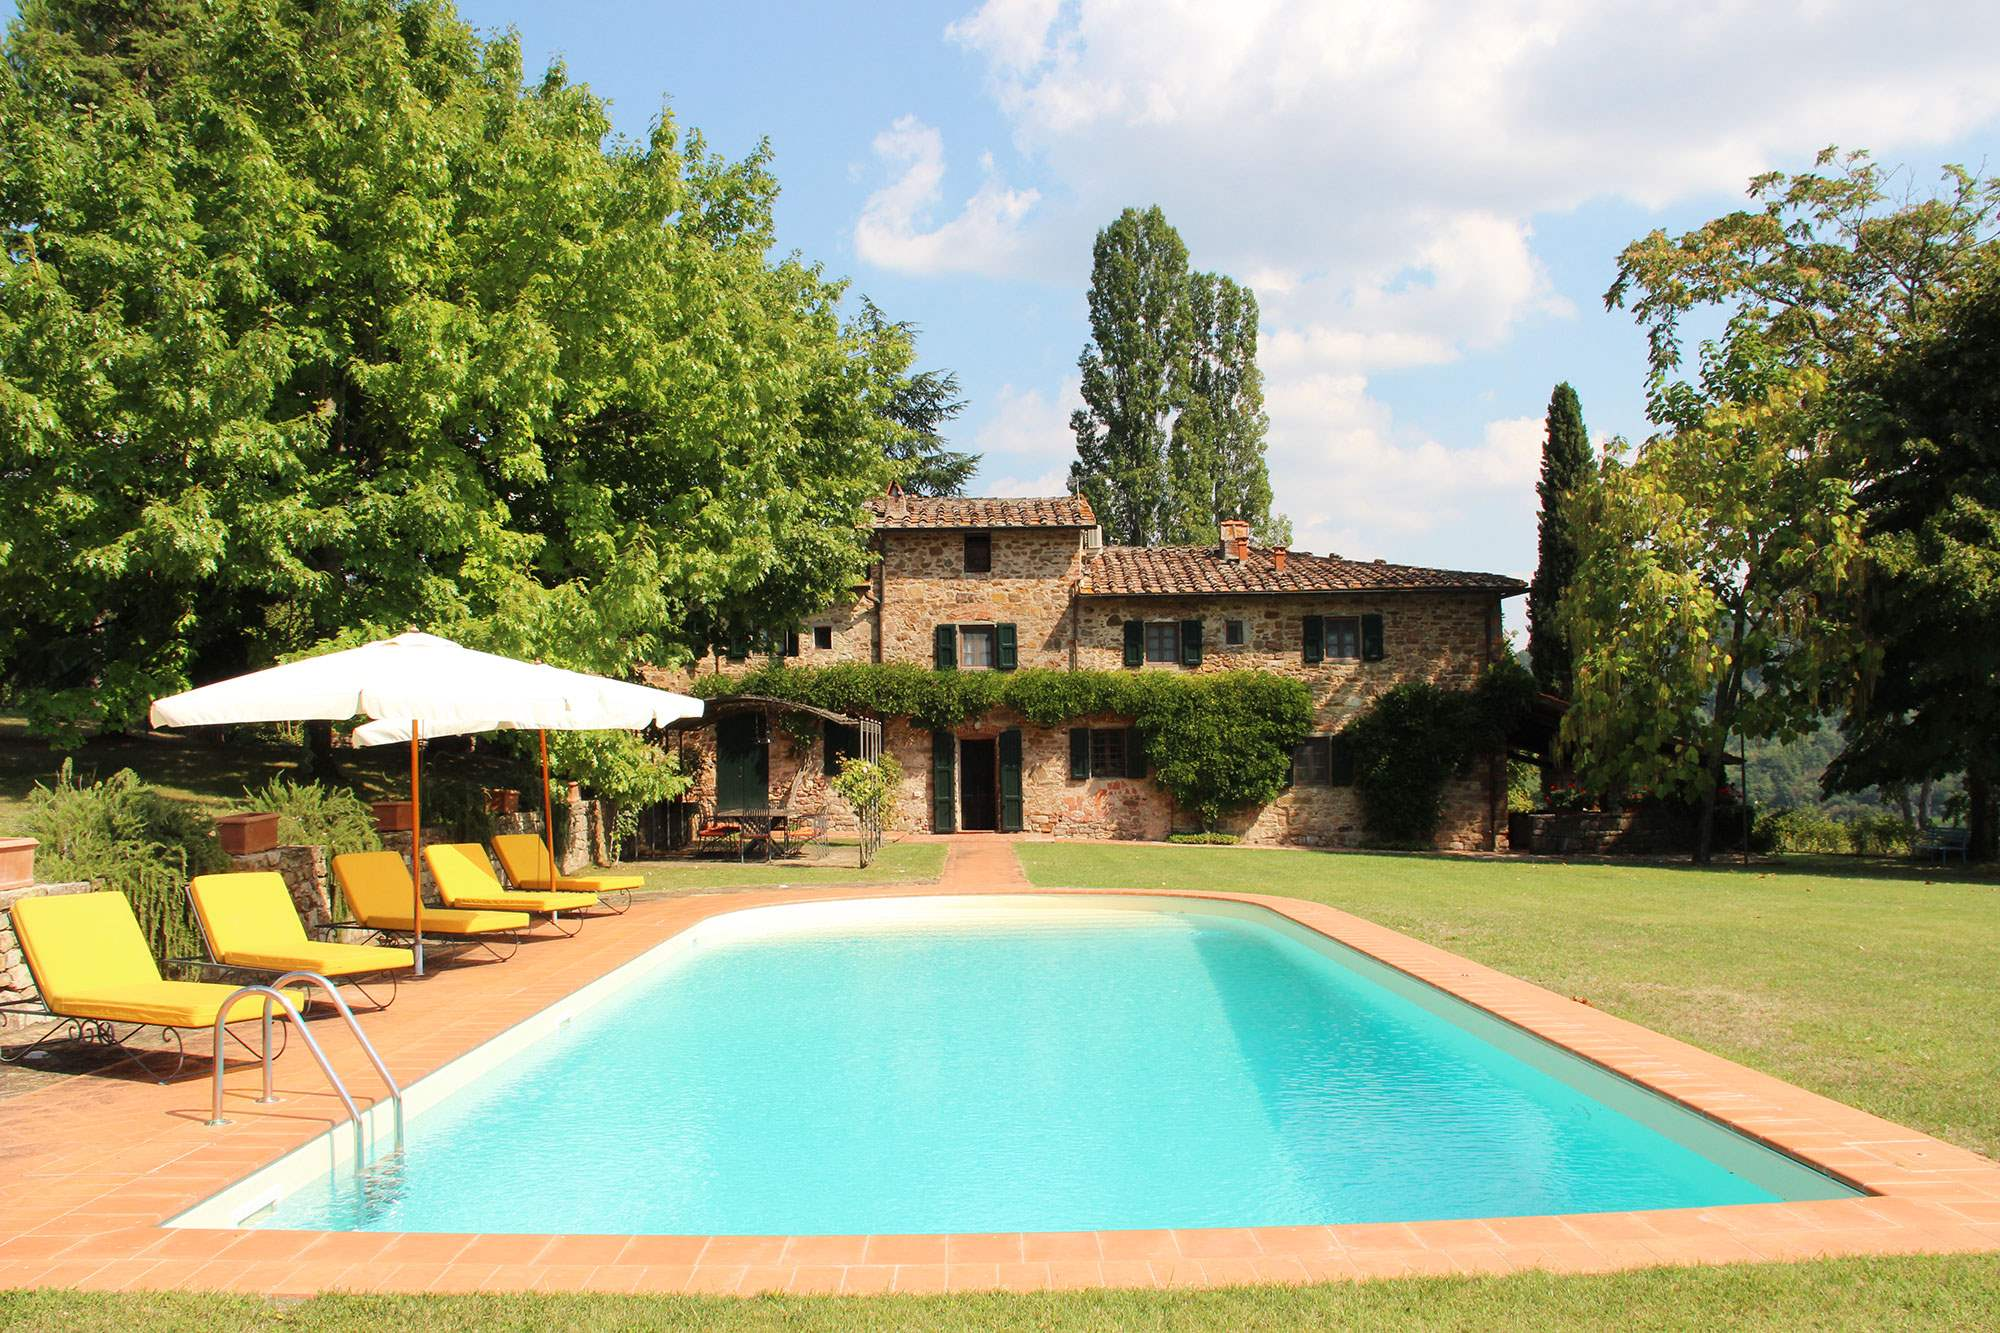 Villa Felicita, Main house and apartment, 10 persons rate, 5 bedroom villa in Chianti & Countryside, Tuscany Photo #11